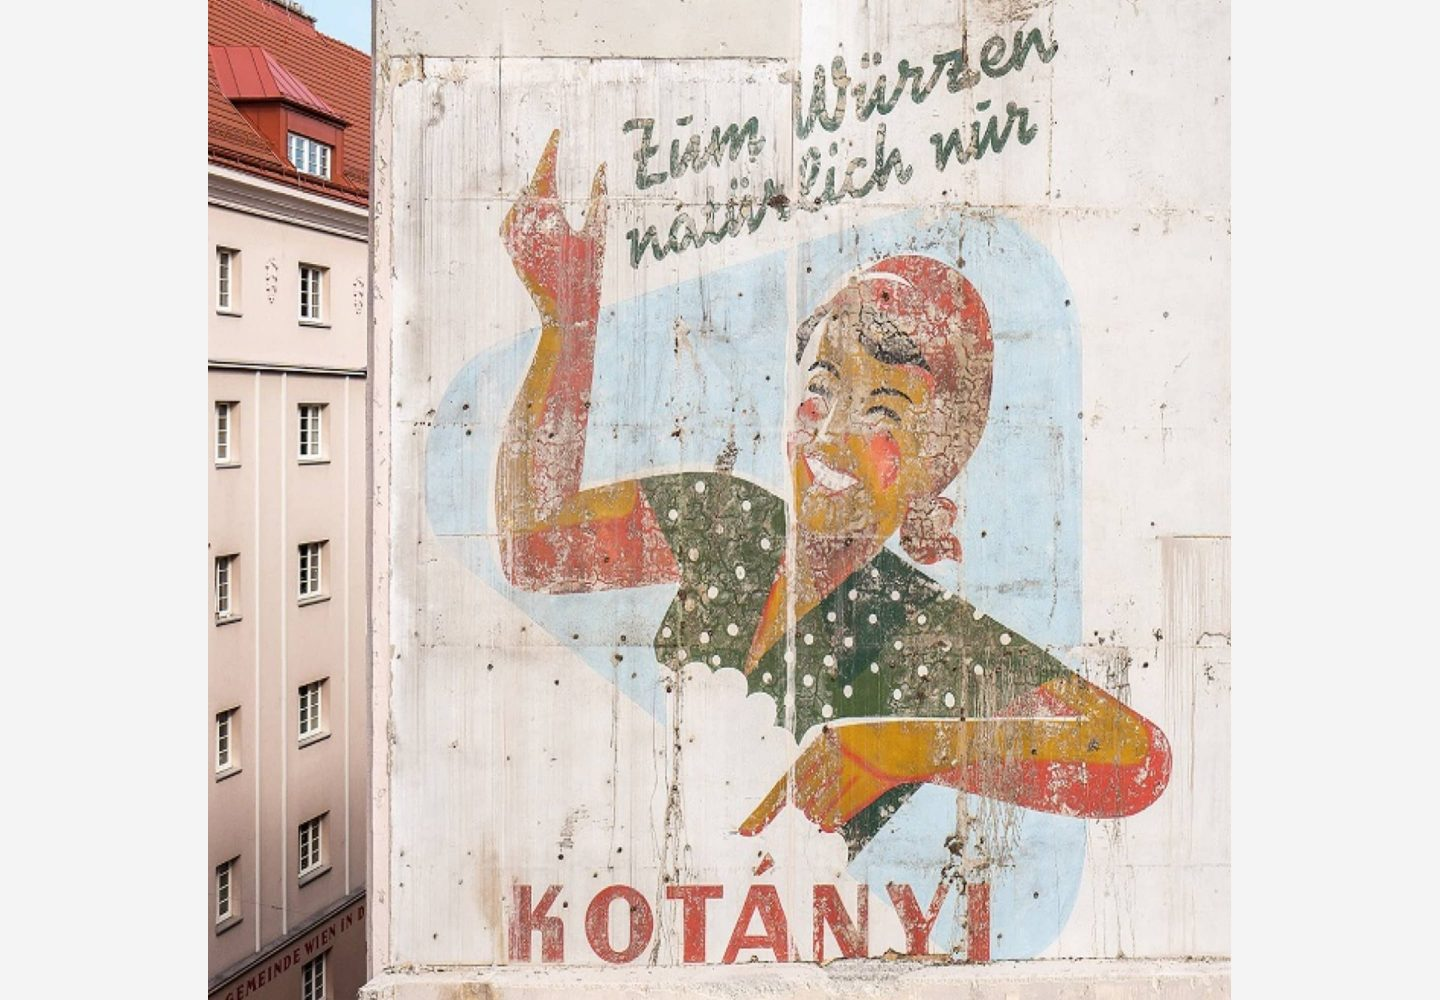 The outside of a Viennese building featuring Kotányi advertising.